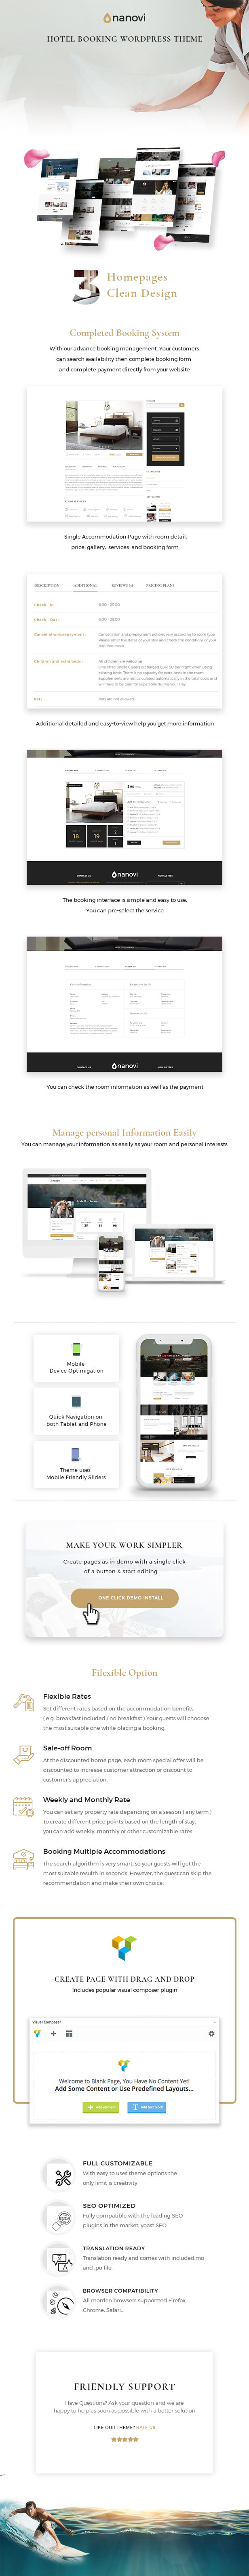 Nanovi - Resort and Hotel WordPress Theme - 5